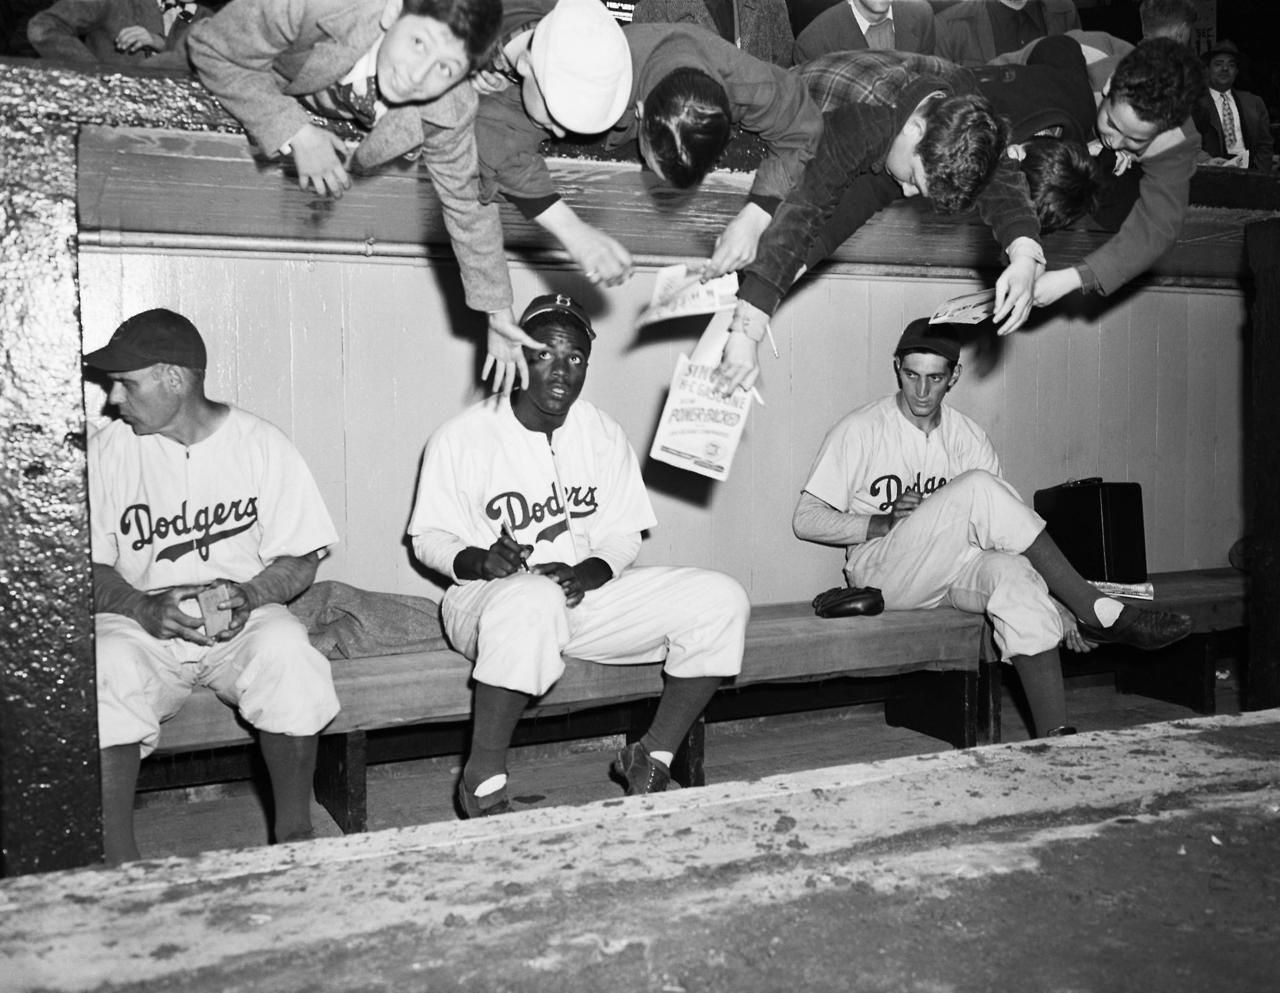 Jackie Robinson signing autographs for the kids in the